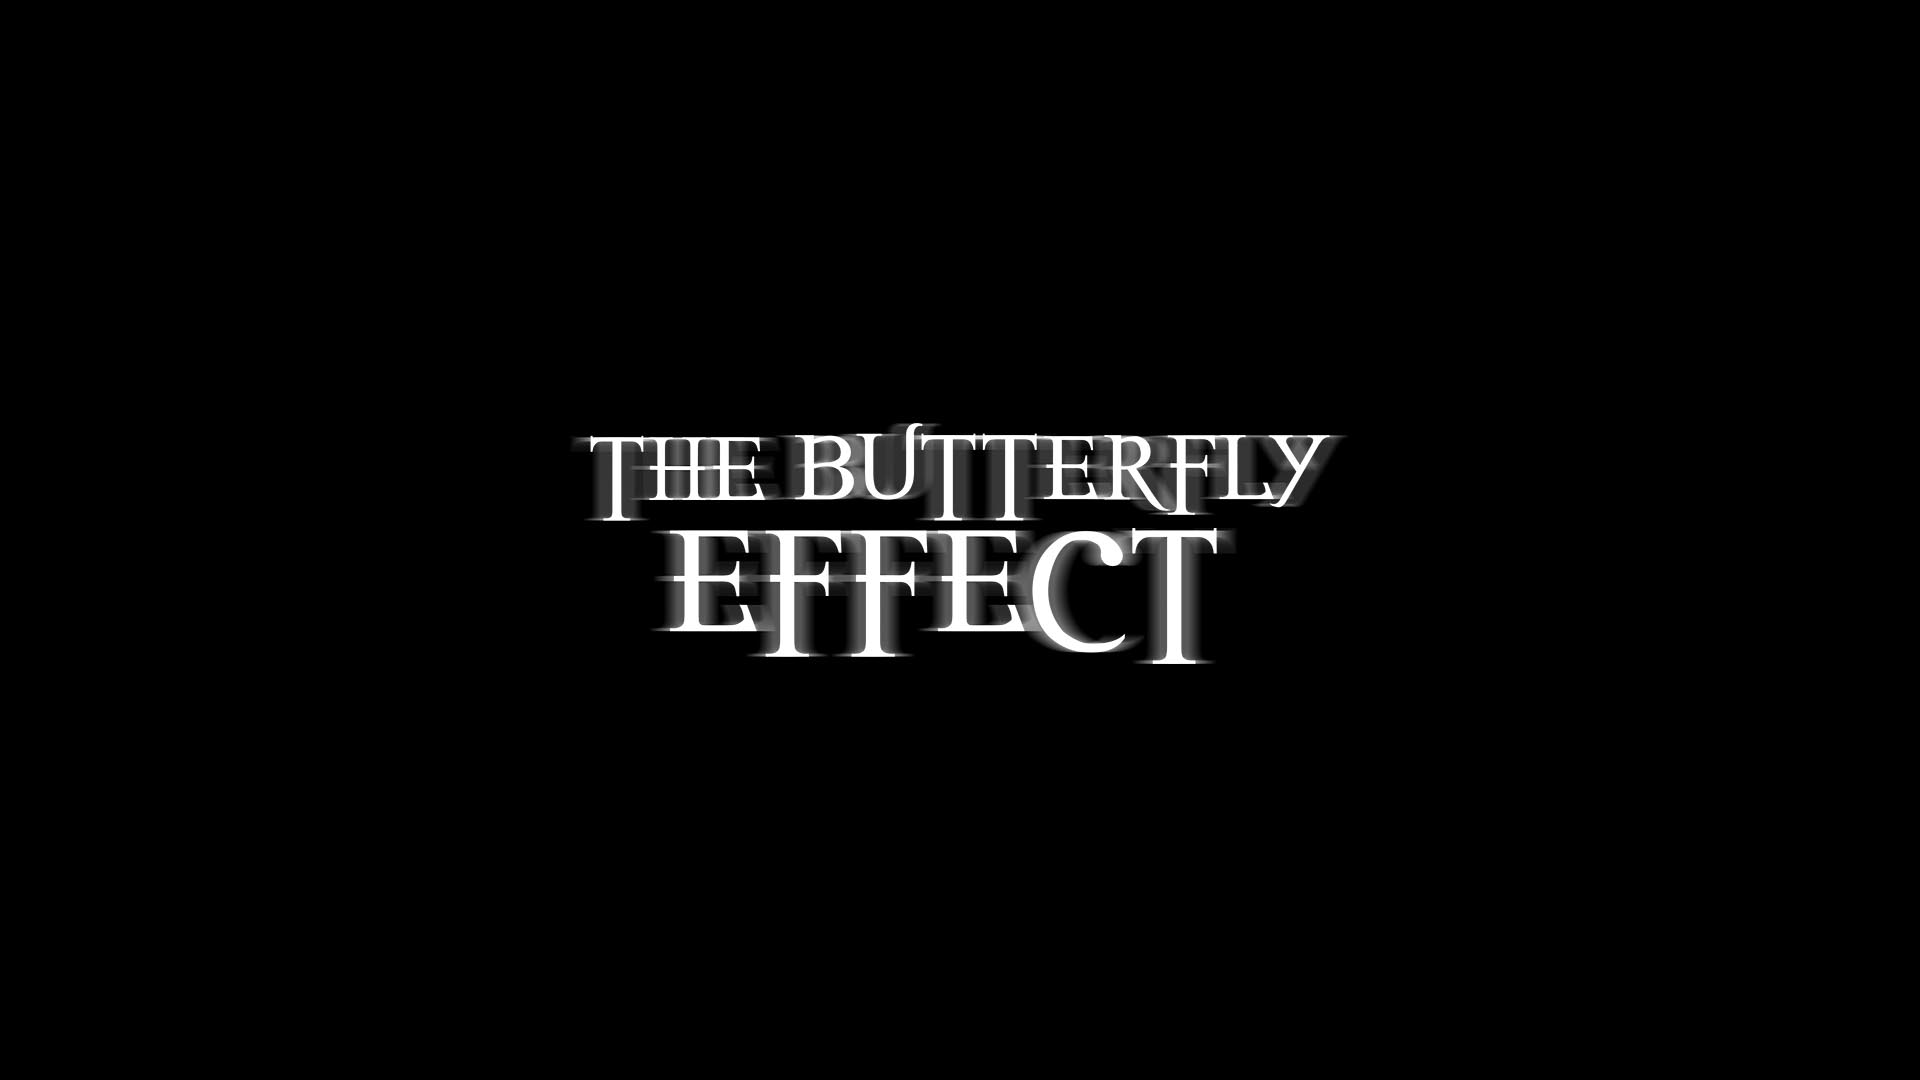 The Butterfly Effect HD Wallpaper Background Image 1920x1080 1920x1080